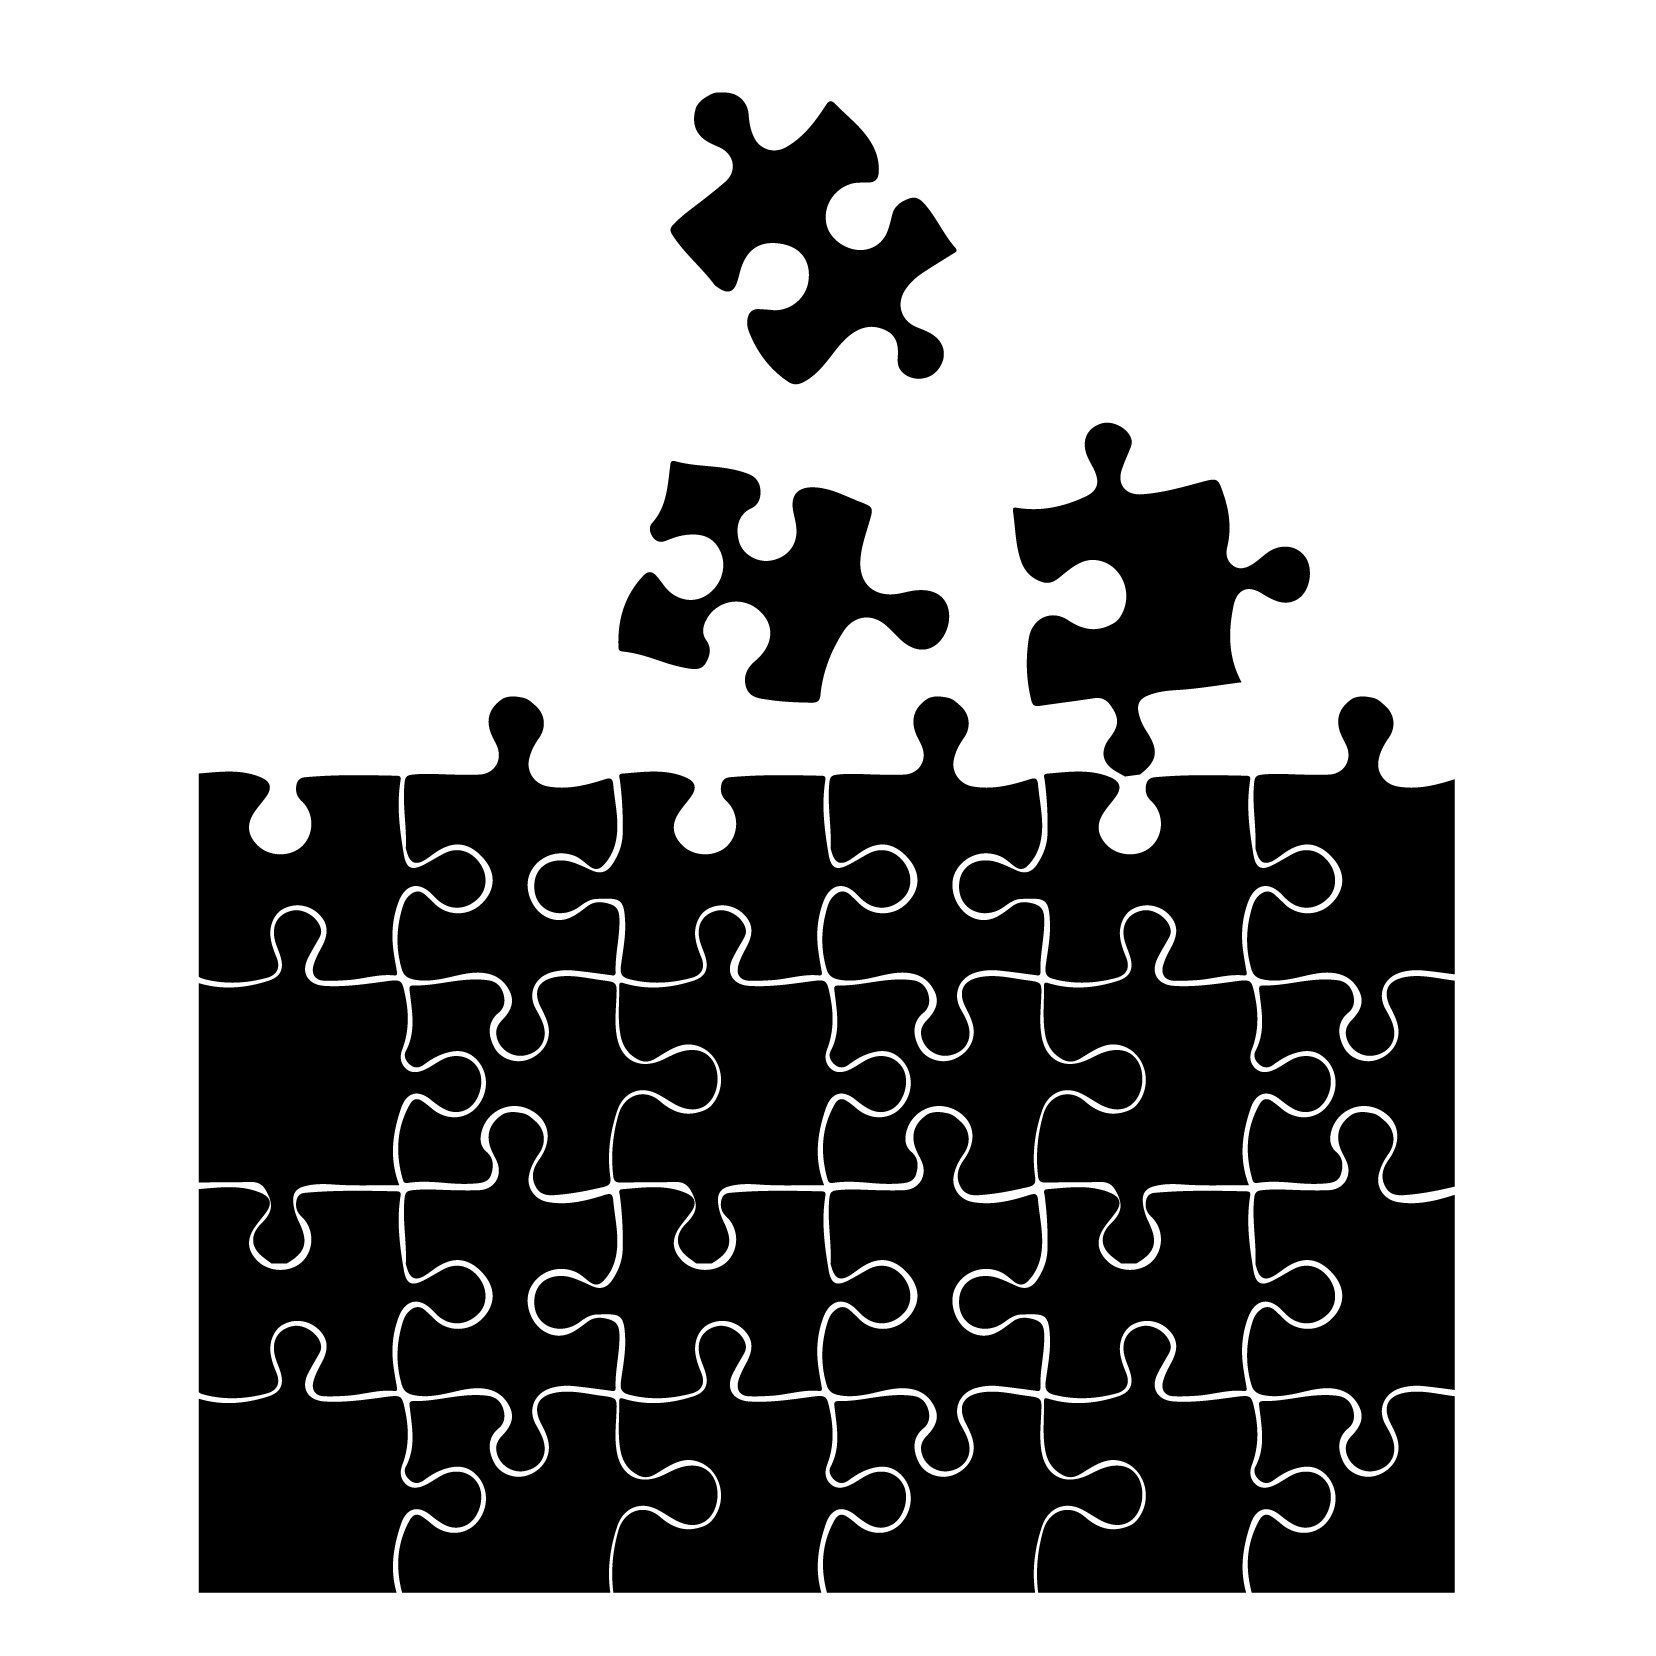 Puzzle Pieces Pattern - Small - Custom Vinyl Wall Art Decal for Homes, Offices, Kids Rooms, Nurseries, Schools, High Schools, Colleges, Universities, Interior Designers, Architects, Remodelers